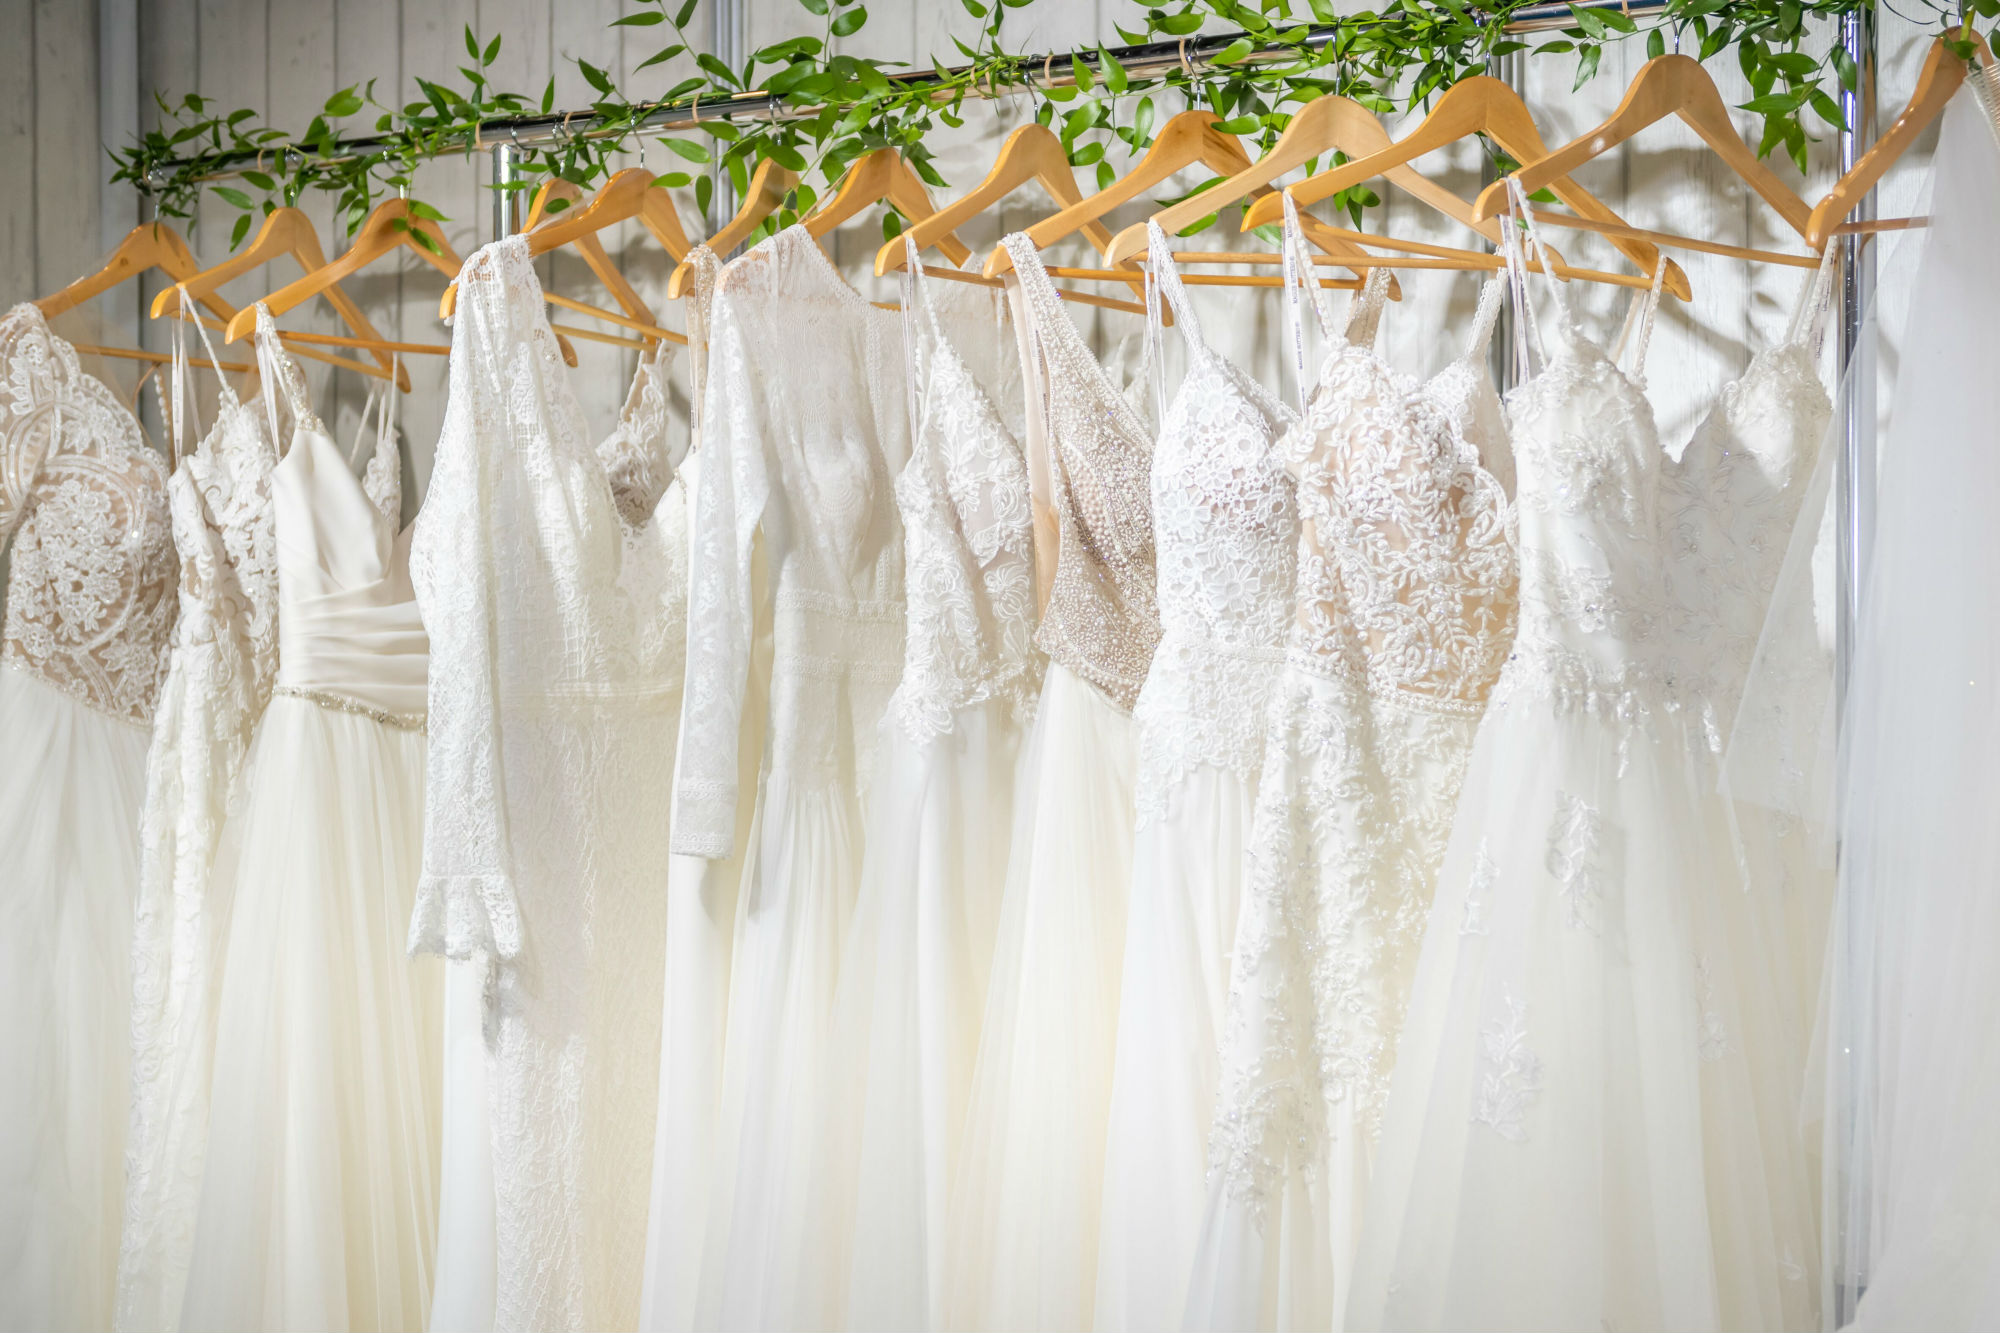 BRIDE Abu Dhabi is taking place this June